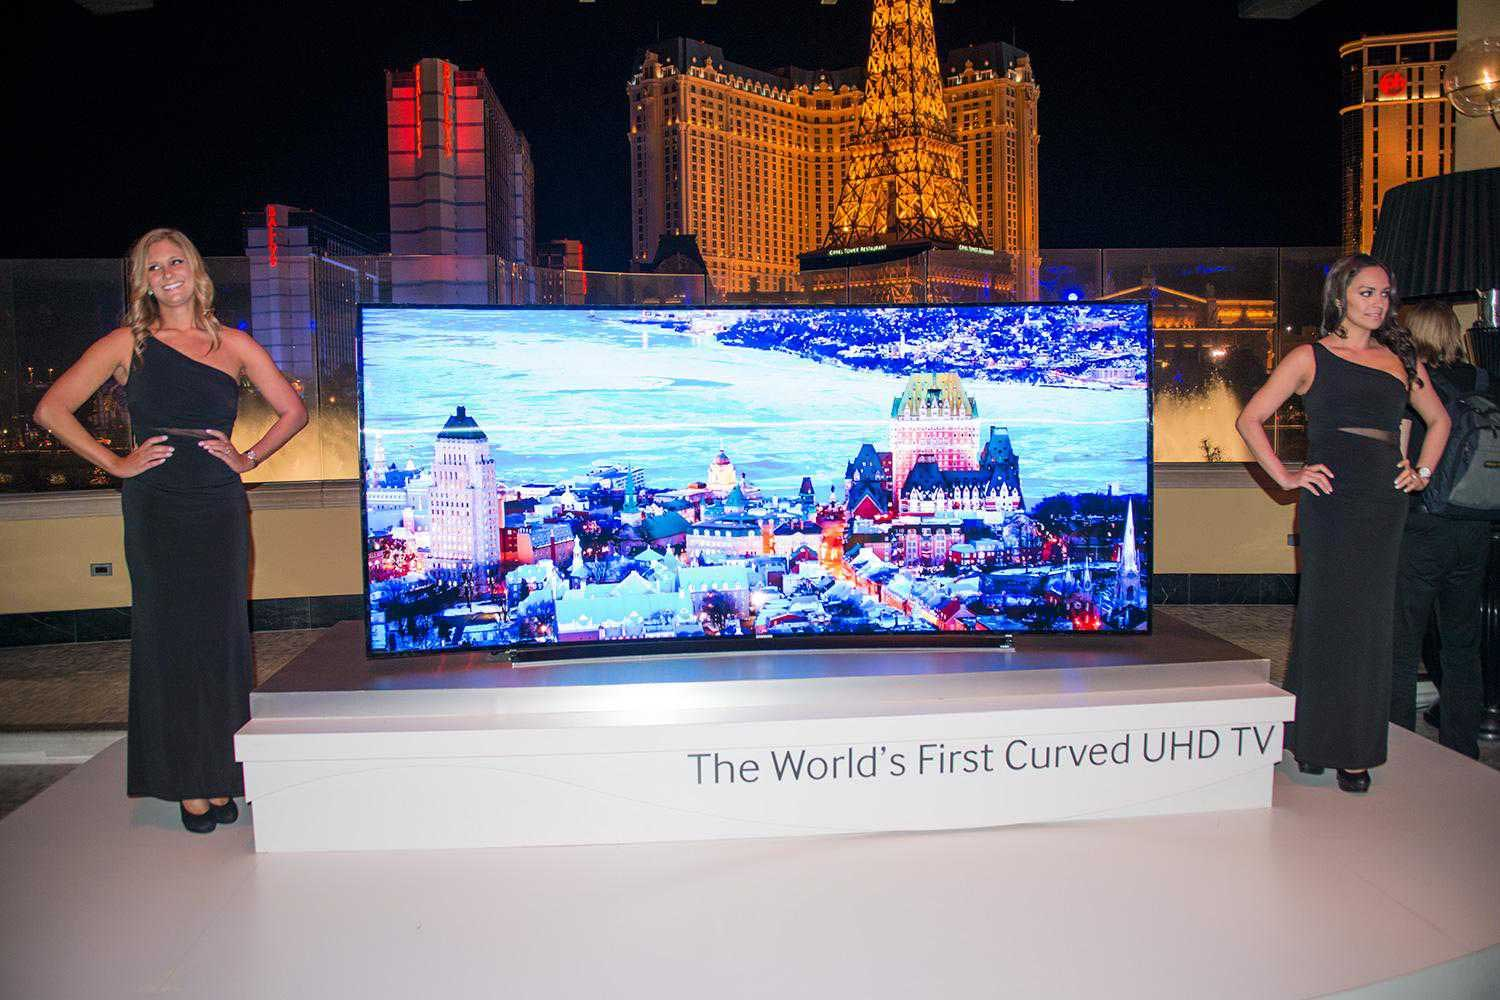 world first curved UHD TV